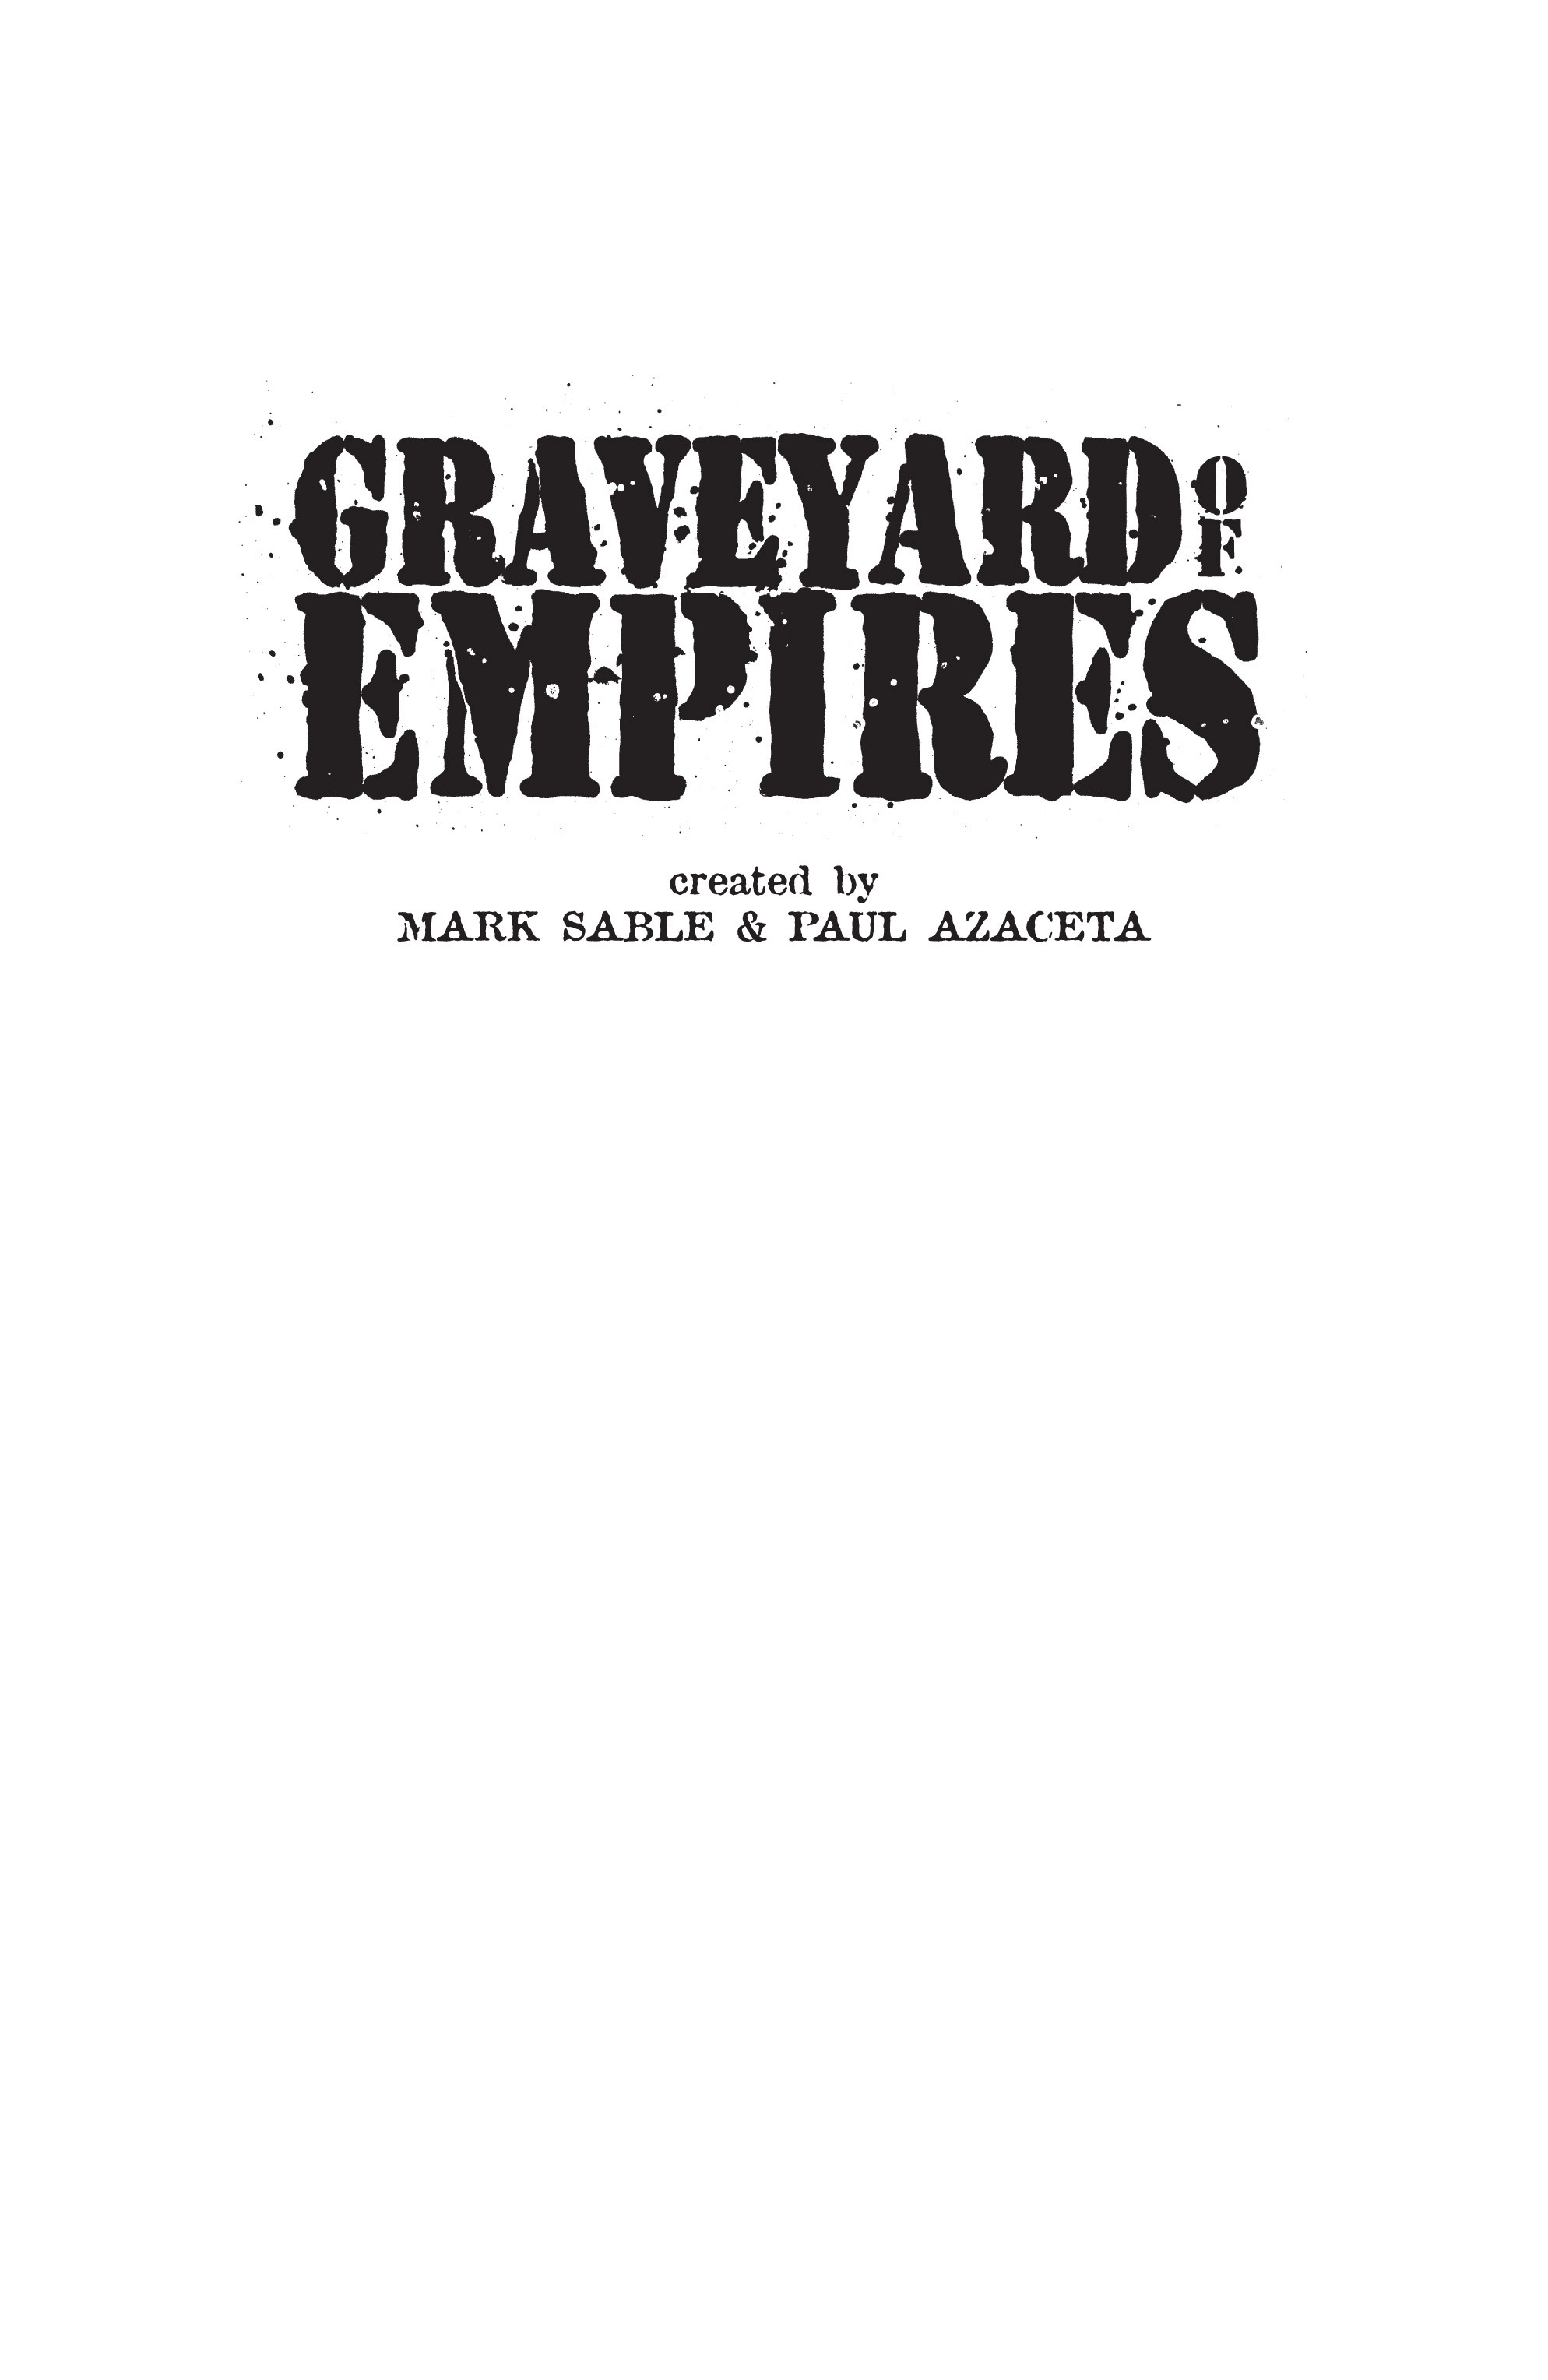 Read online Graveyard of Empires comic -  Issue # TPB - 3